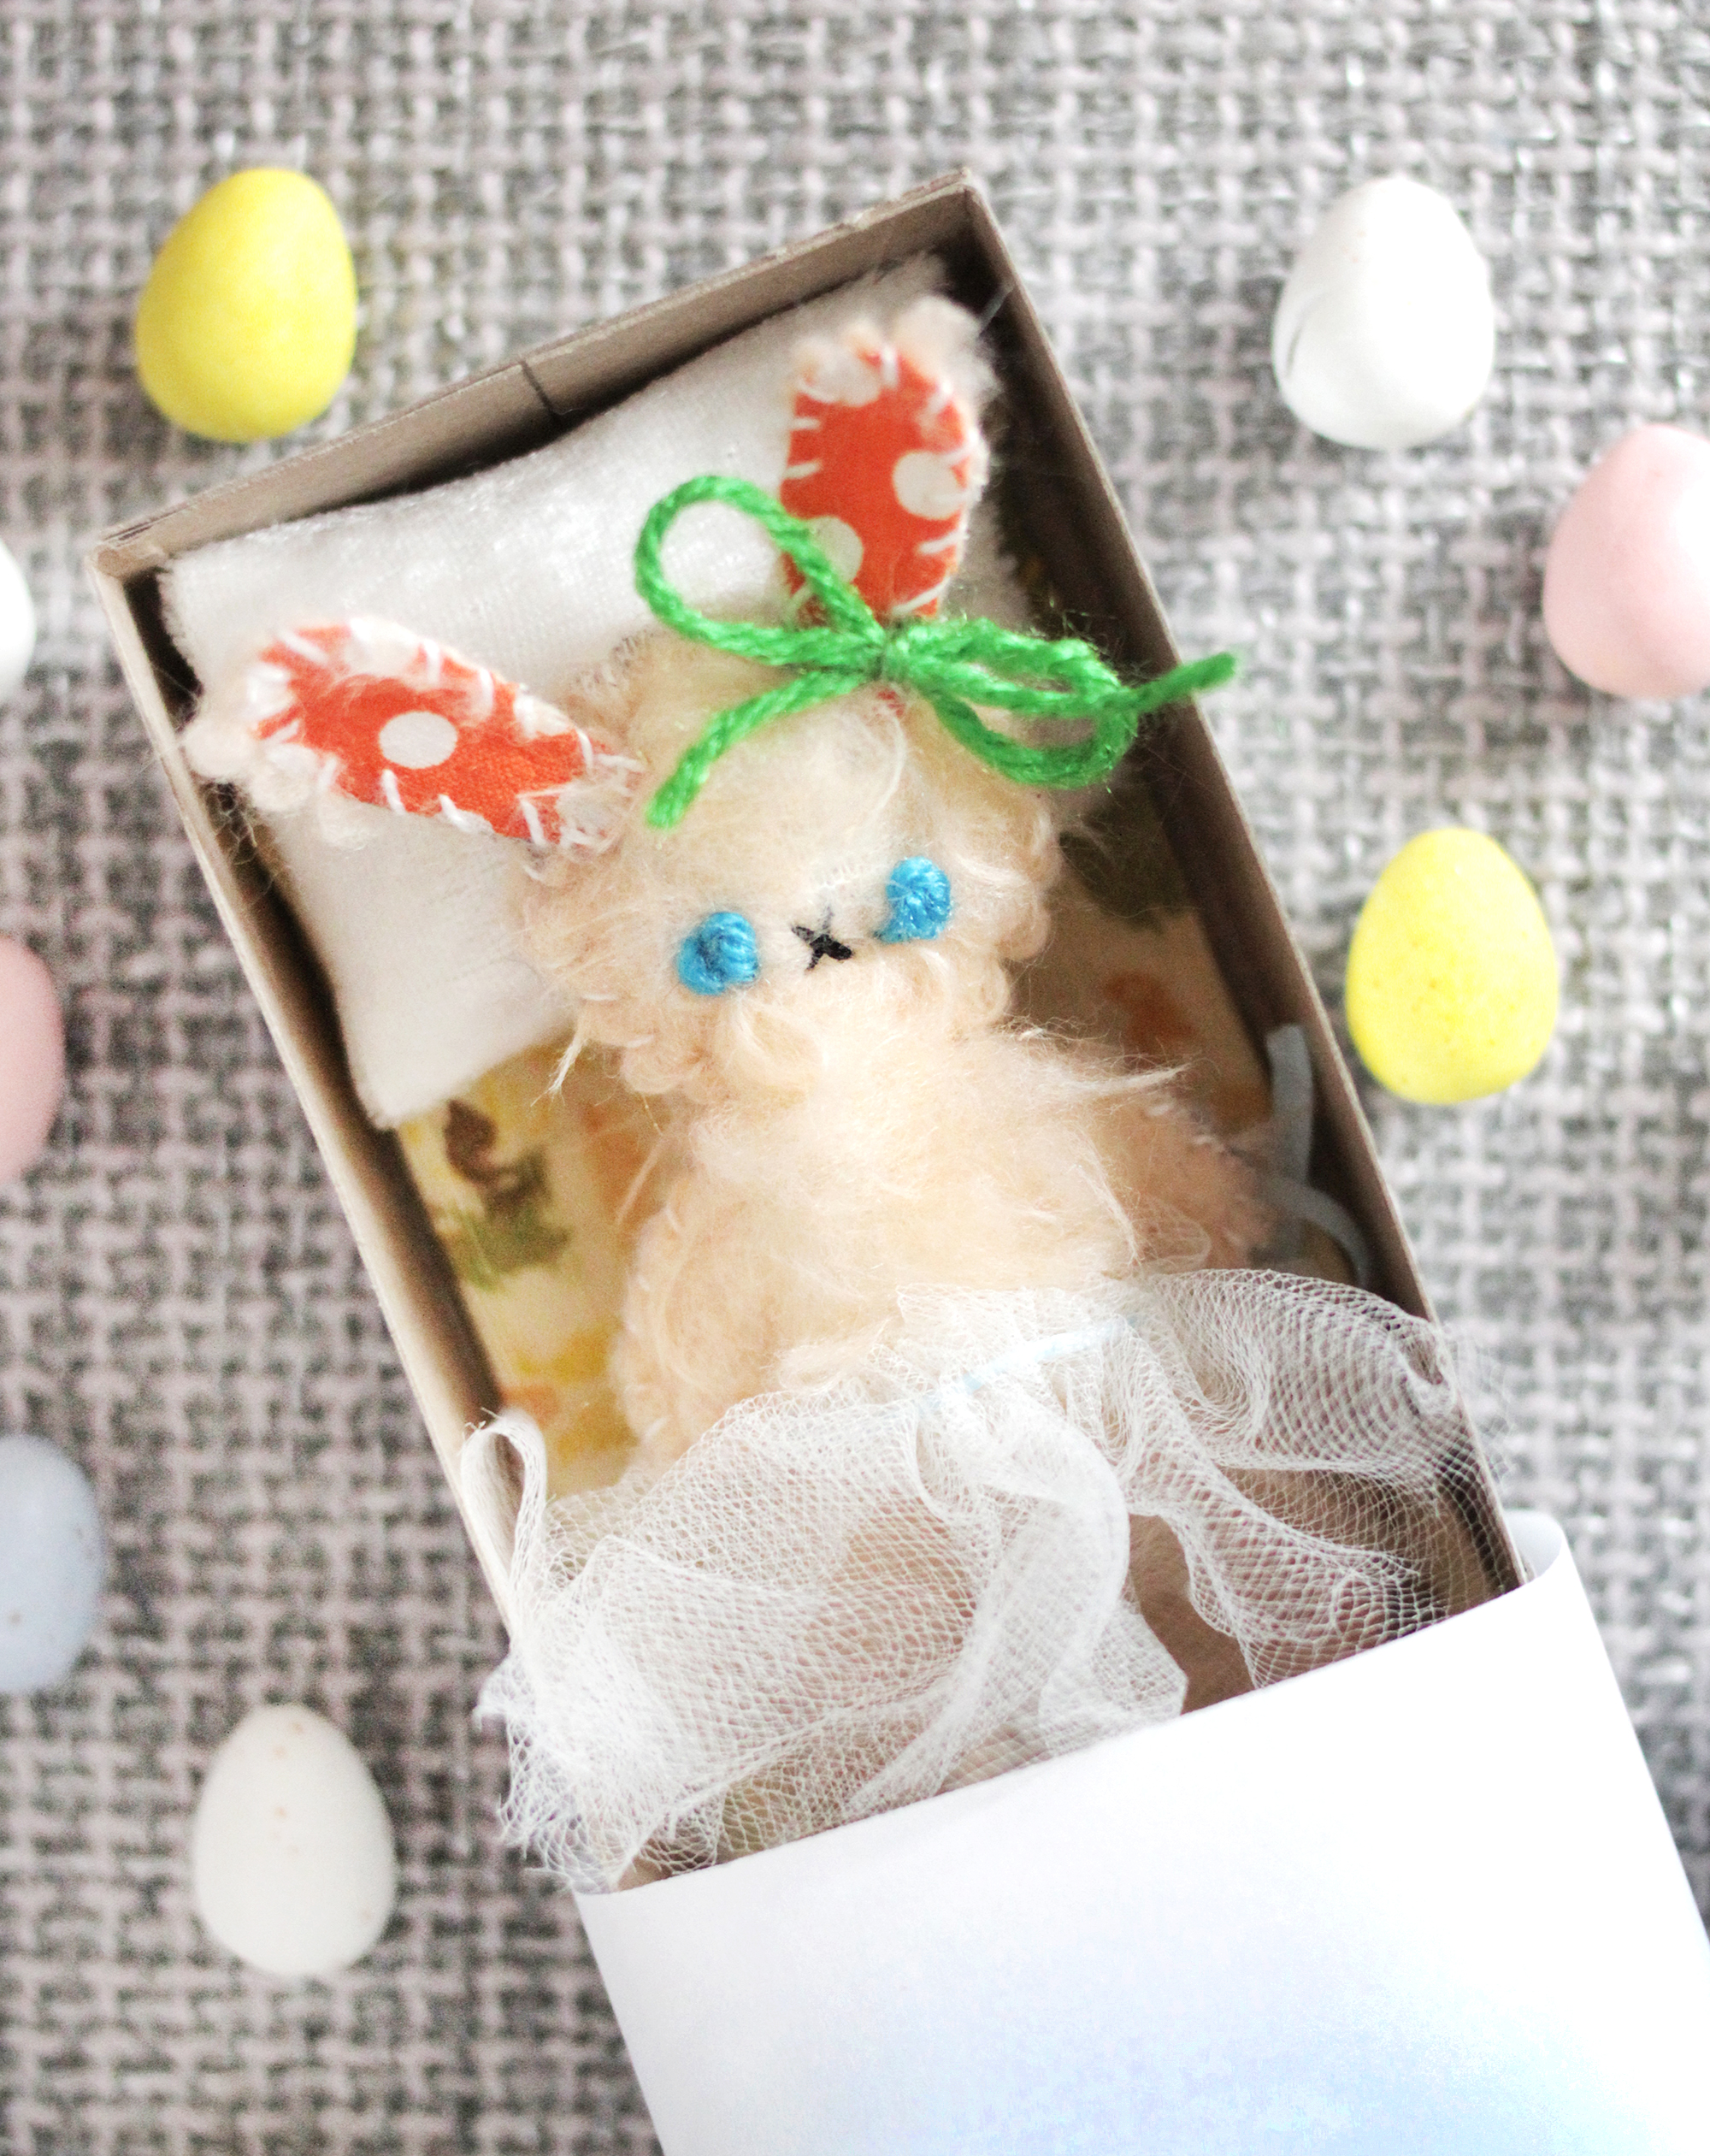 This darling matchbox bunny would be such a sweet gift for Easter